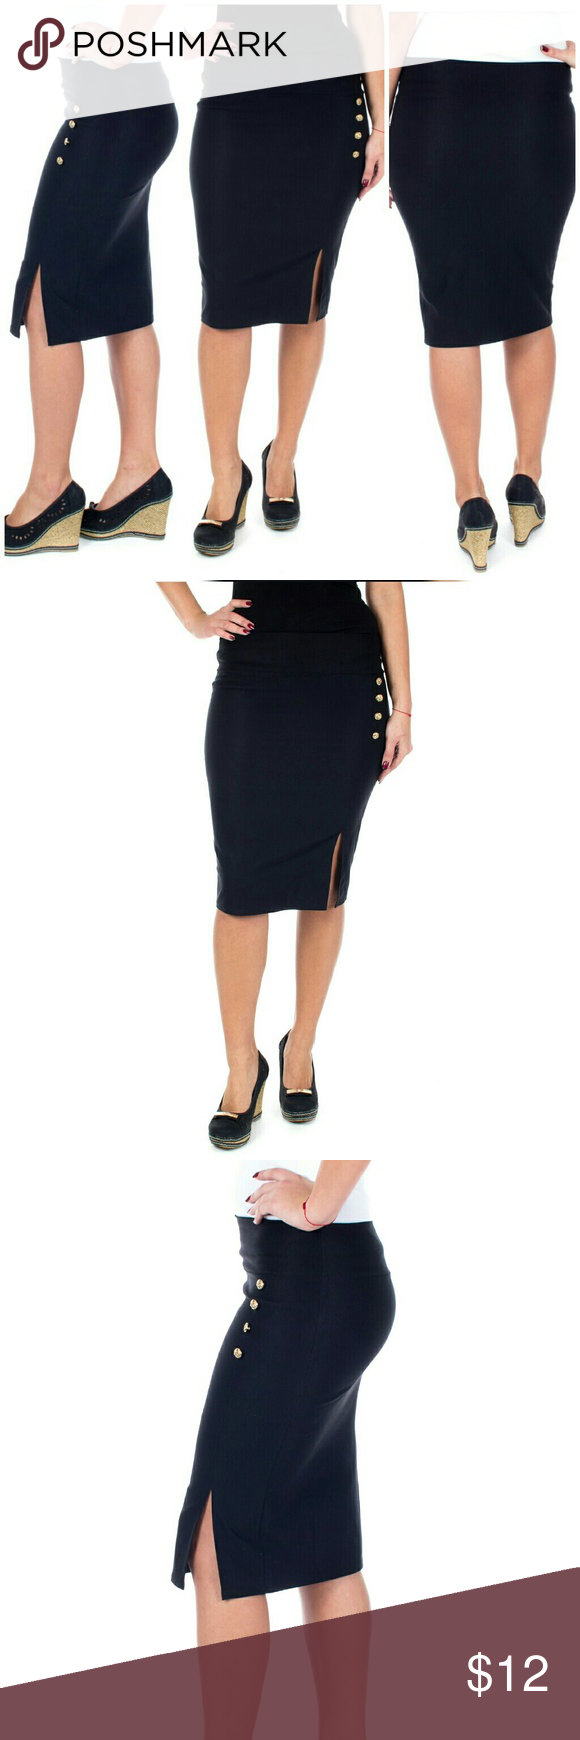 """Women Pencil Side Button Skirt, d-4024, Black Knee length stretch Forever Young women professional pencil skirt with a classic side slit and button accents is perfect for office wear. Comfortable, elastic, not lined pull-on. Can be worn on or below waist. Skirt length approx. 23.5"""". A true statement in ladies fashion! Waist: small 26"""", medium 28"""", large 30"""", XL 32"""", XXXL 36"""". Forever Young Skirts"""